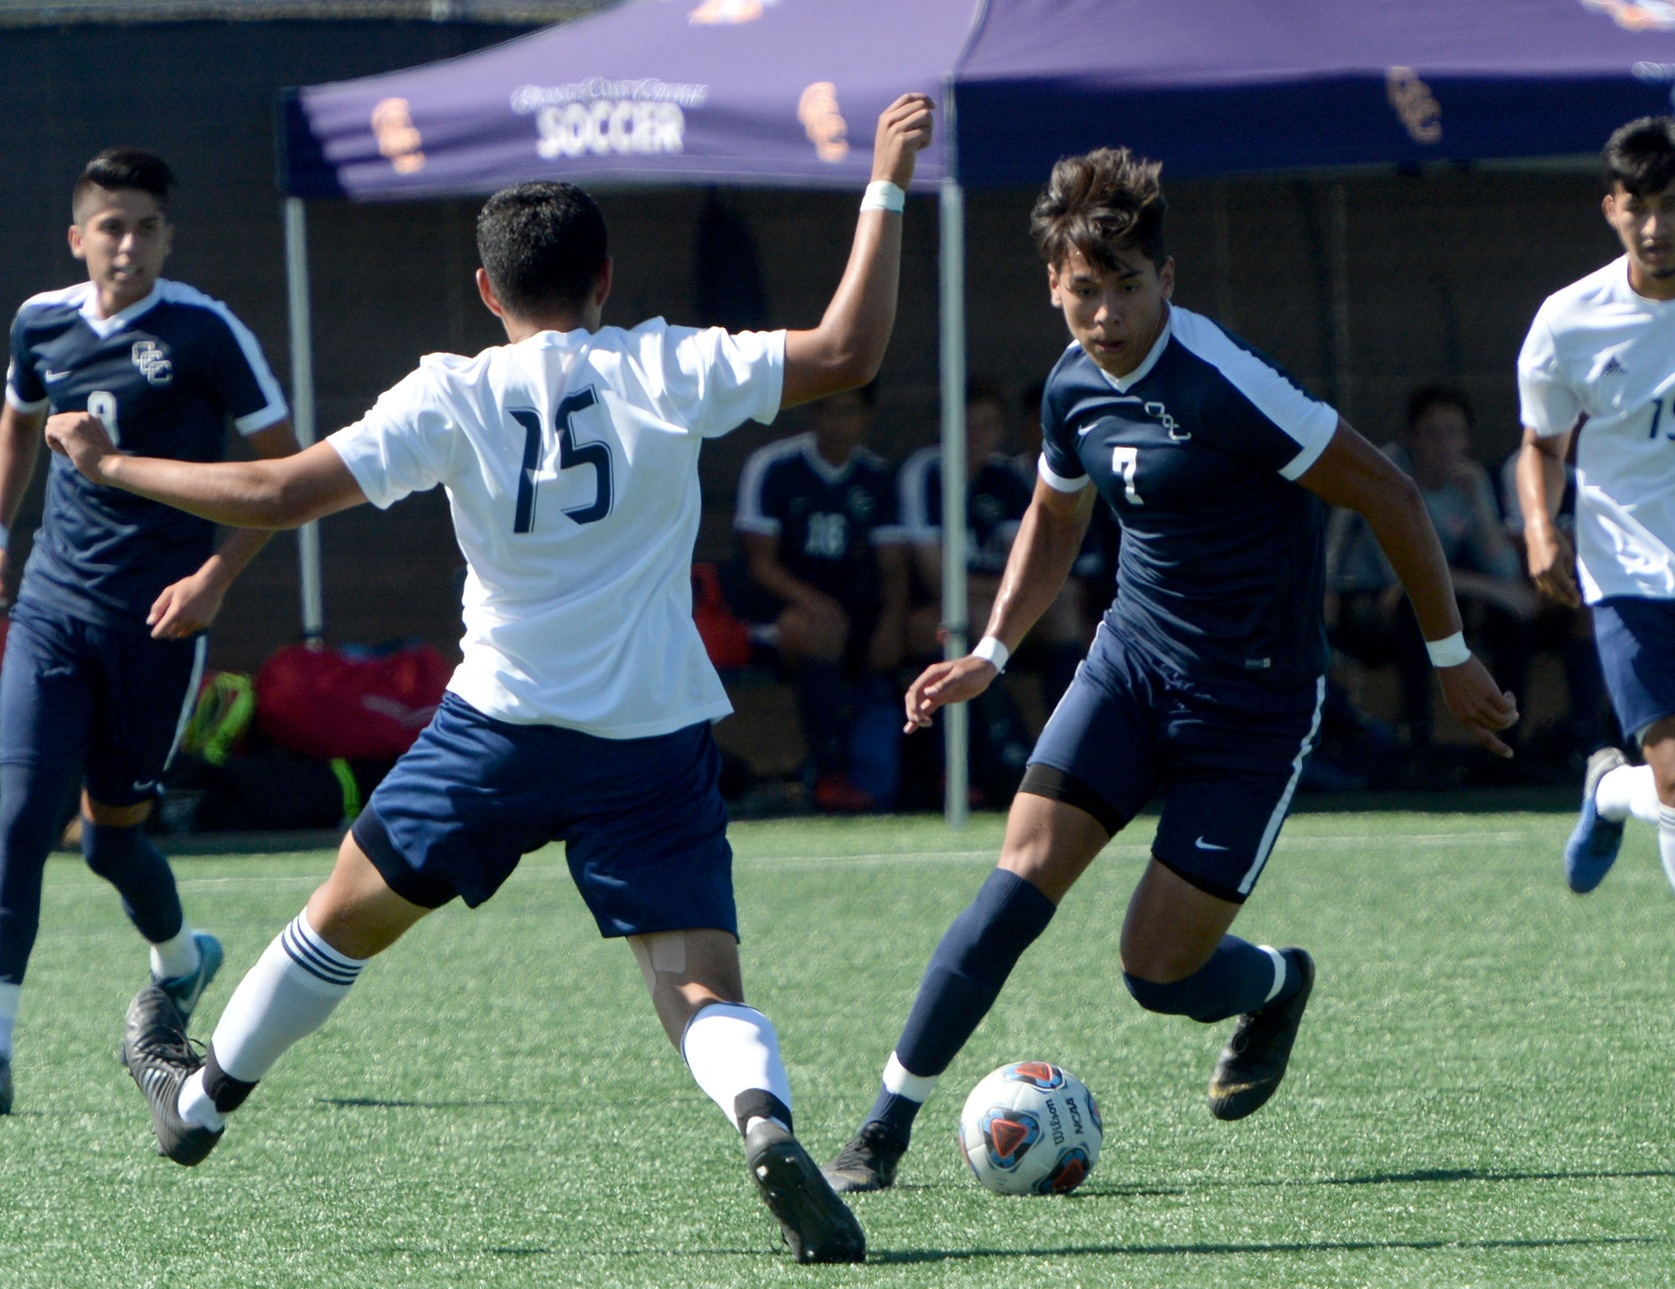 Pirates grind out 2-0 win over Southwestern